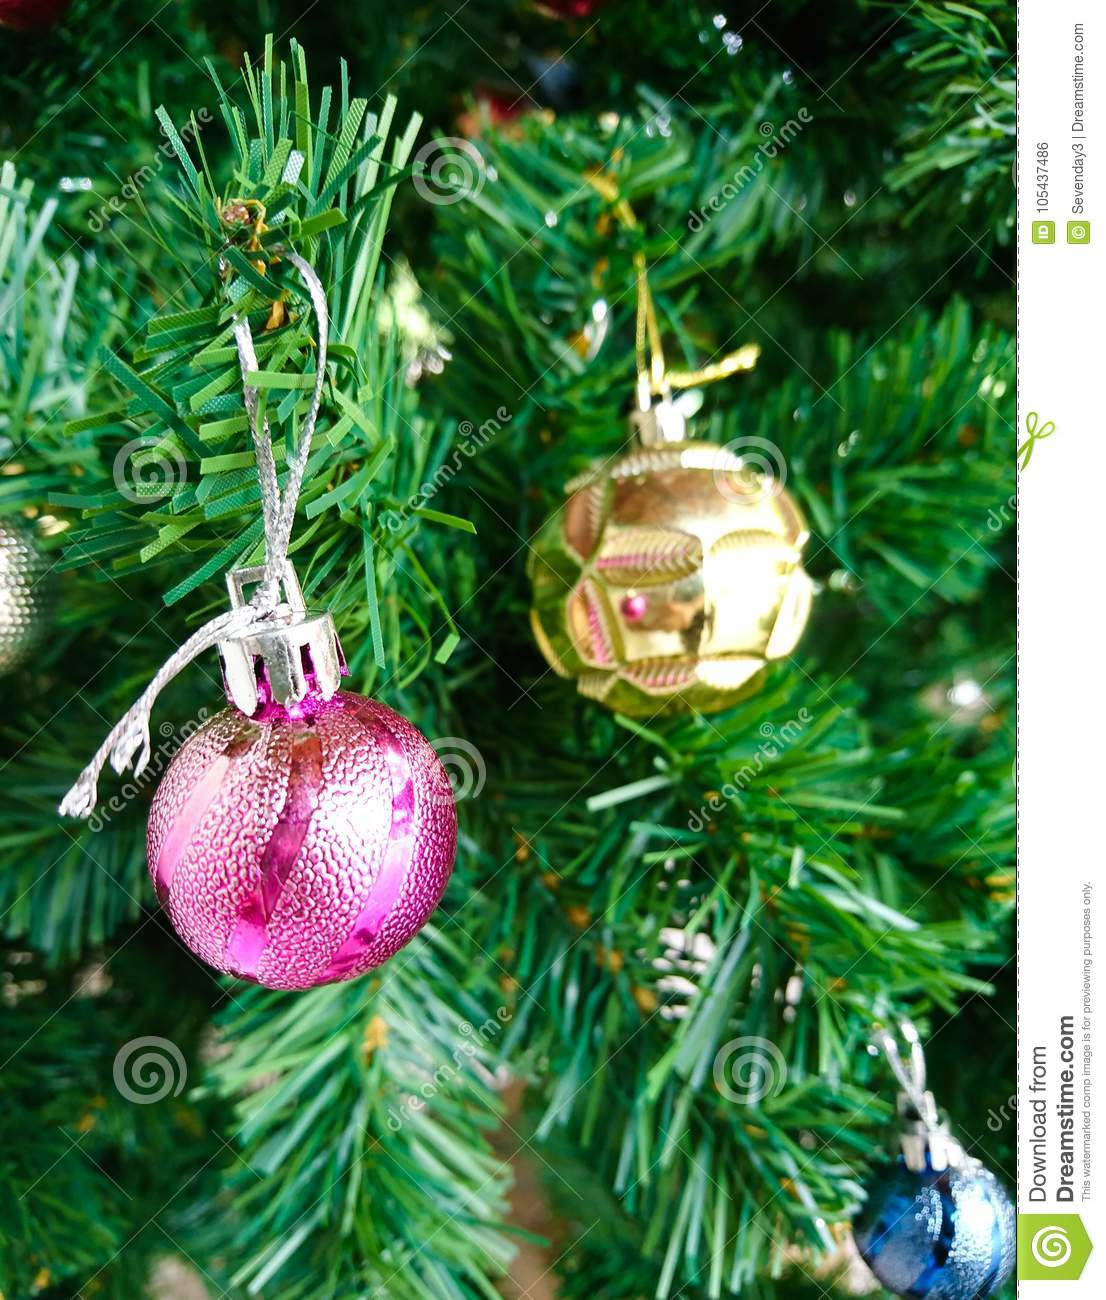 christmas trees and other decorations with color balls and green leaves on the xmas day